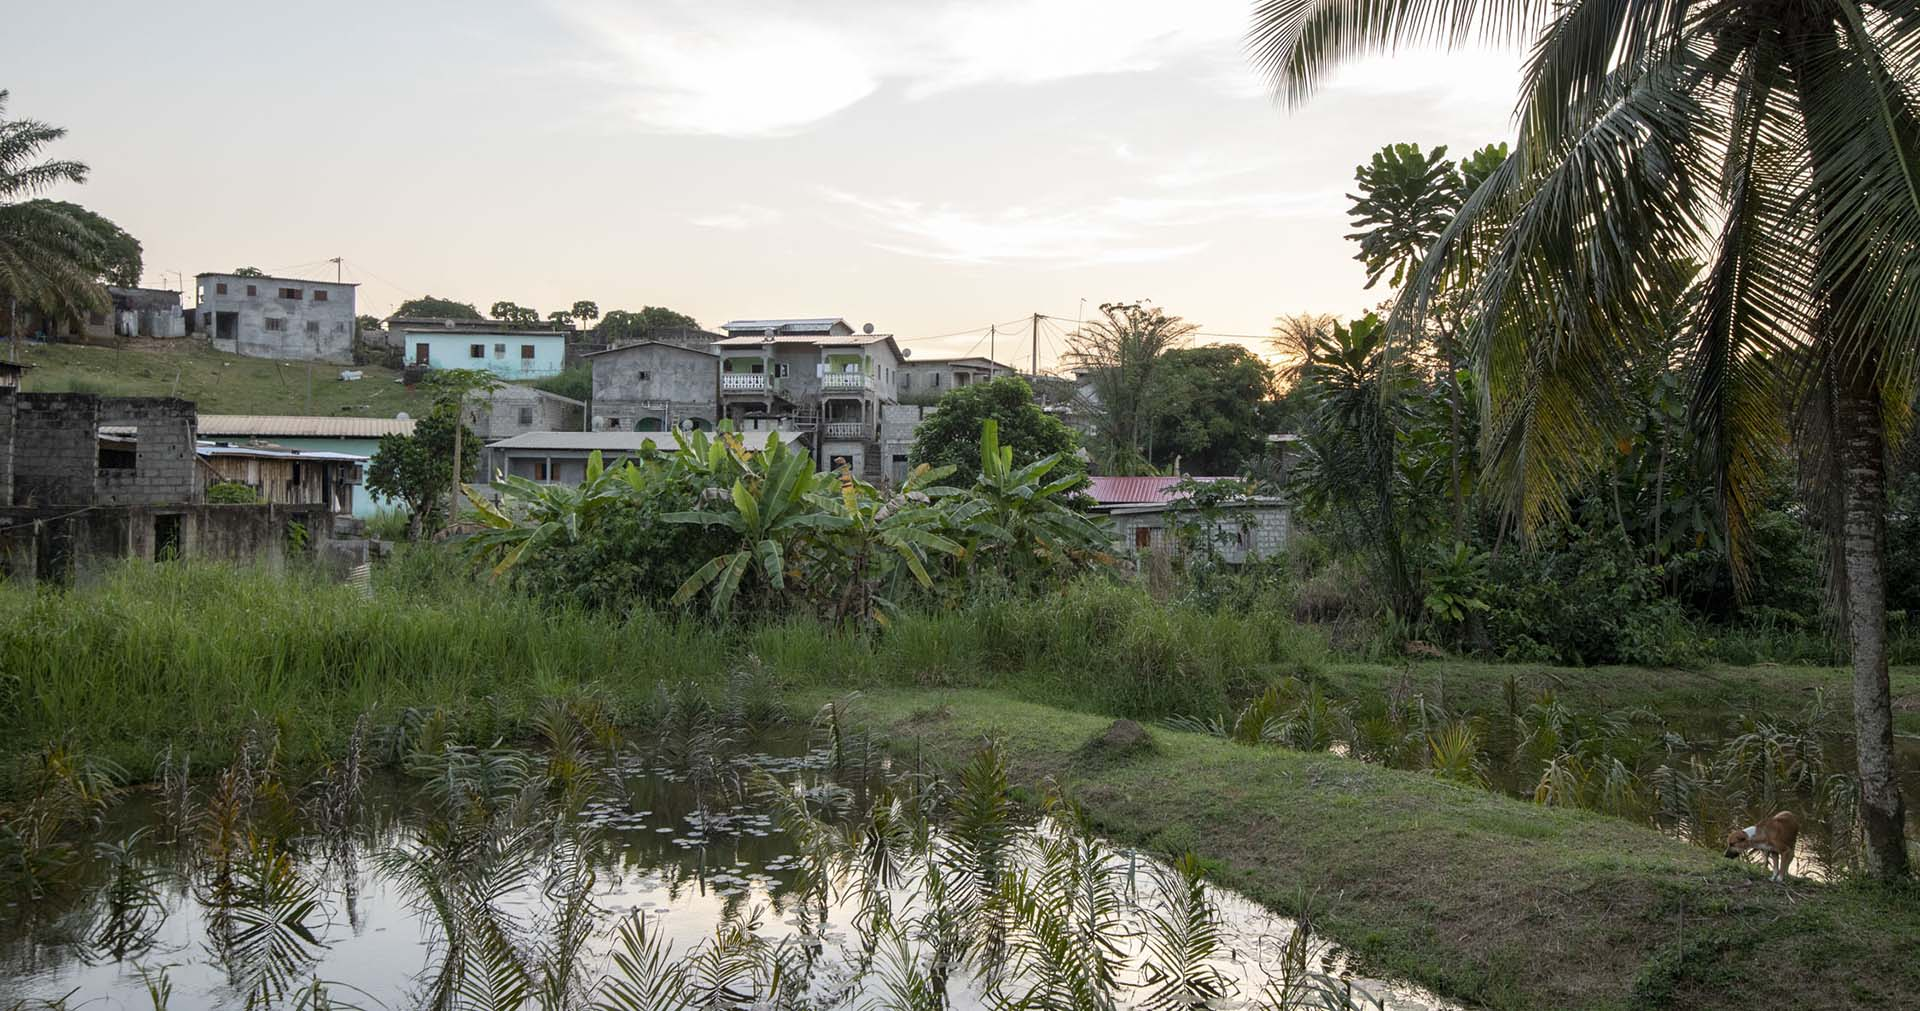 Documentary Photography and Video Production, NEPAD Gabon